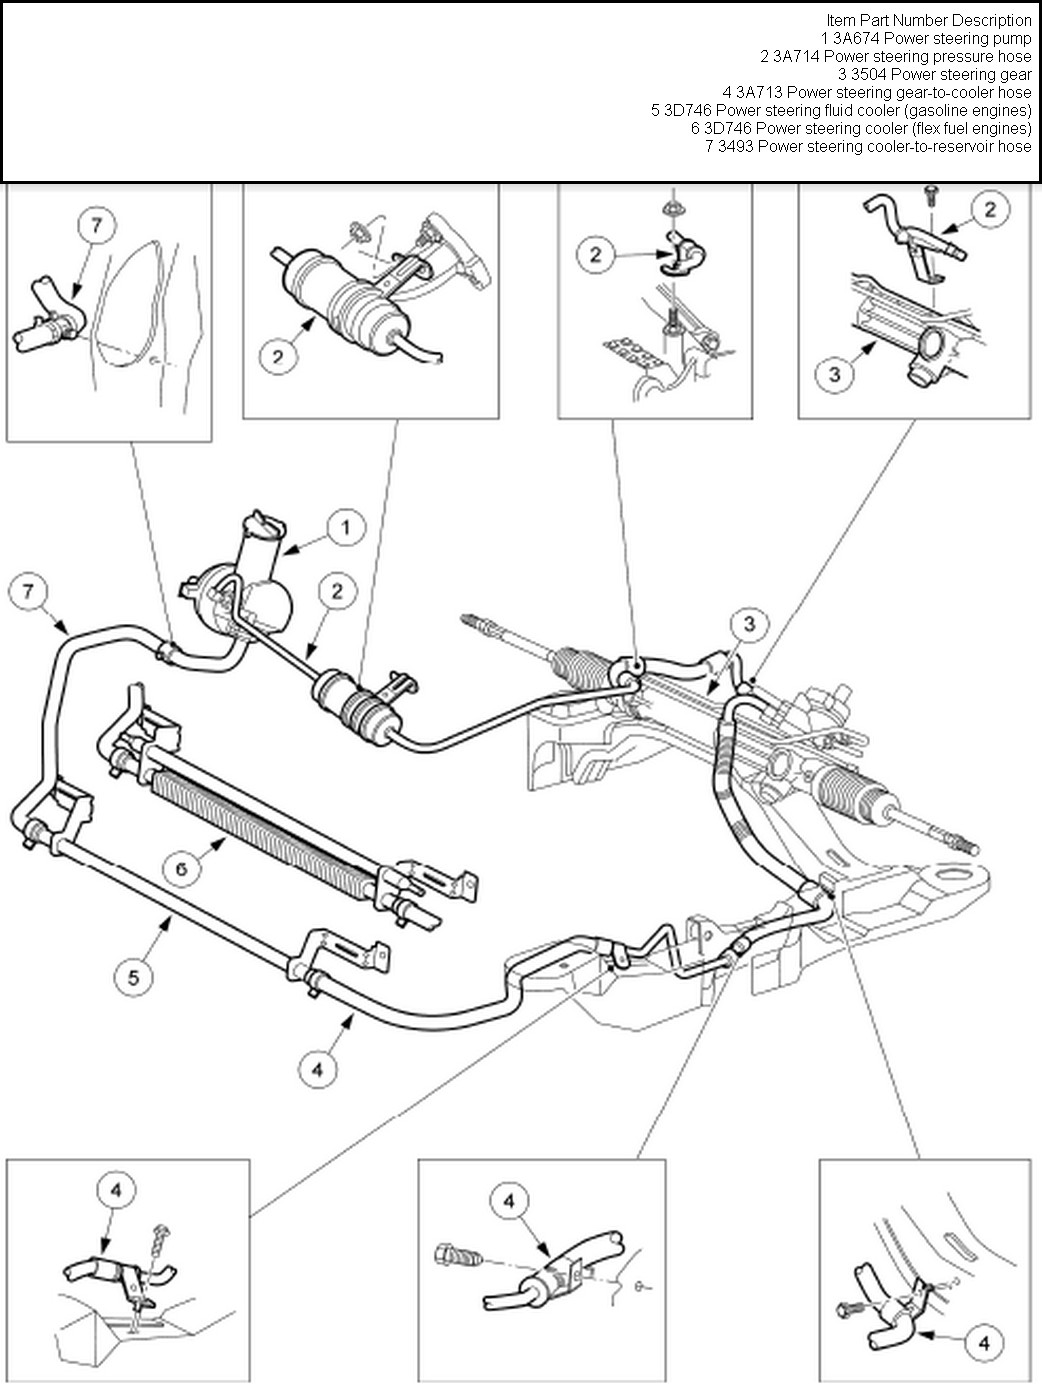 The Engine On 2002 Mercury Mountaineer Egr Valve Location likewise Free Ford Wiring Diagram 2003 Ex furthermore 98 F150 4 6 Serpentine Belt Diagram also Ford Five Hundred Fuse Box also 2003 Mercury Sable Belt Diagram. on 2003 focus pcv valve location